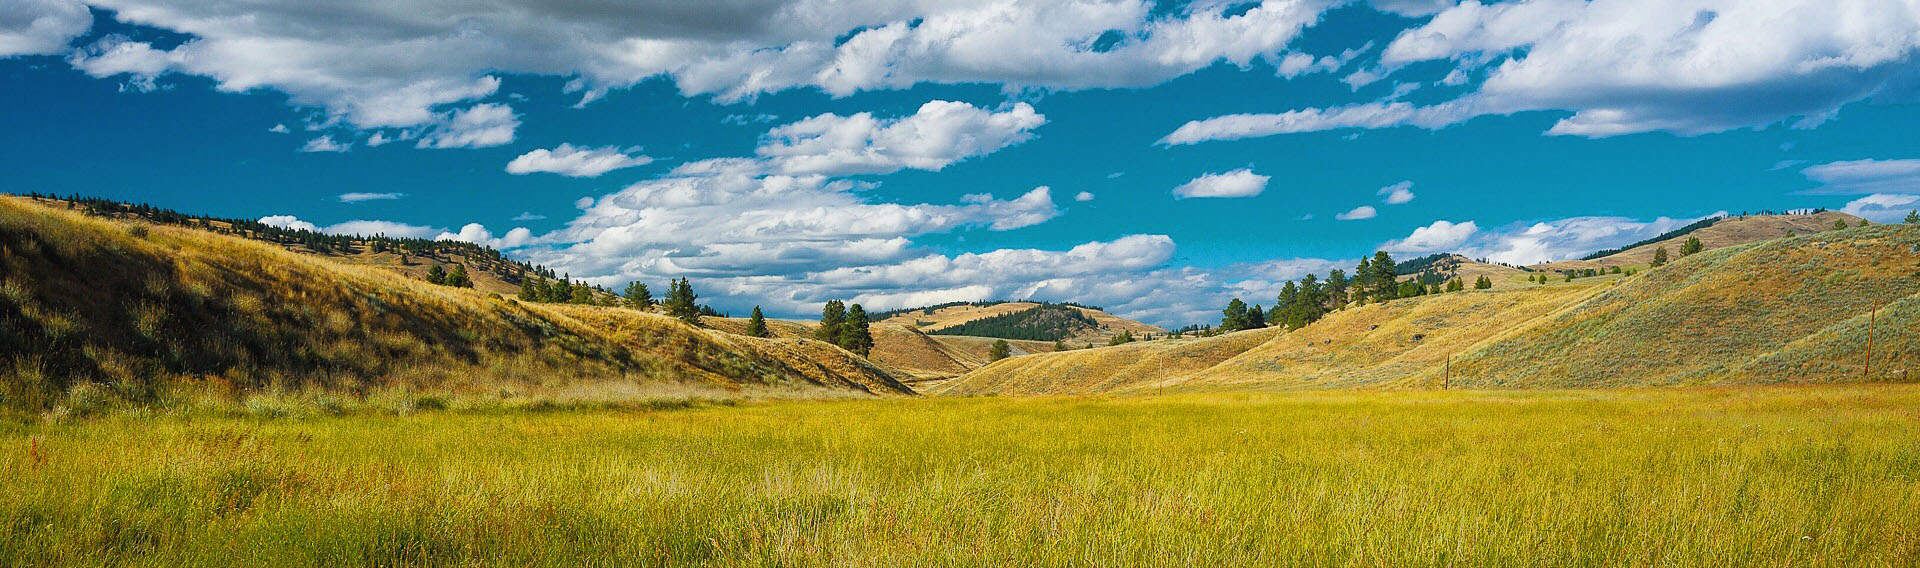 Okanogan Highlands